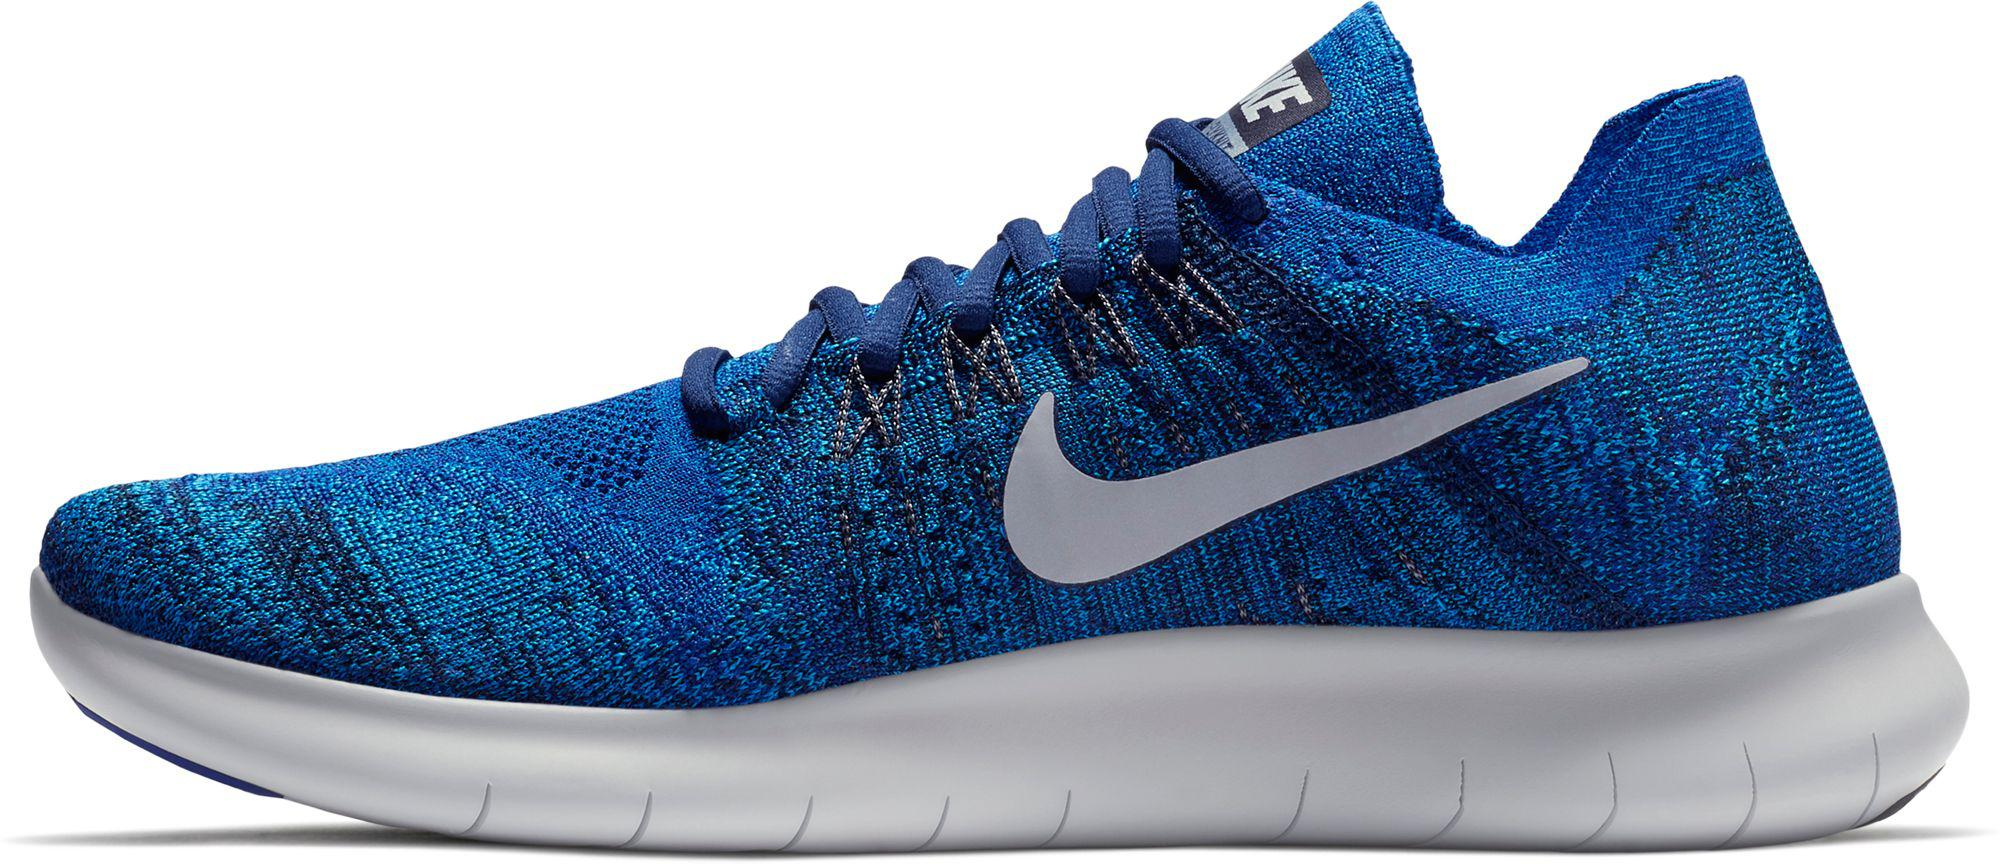 93b1c67efd6 Lyst - Nike Free Rn Flyknit 2017 Running Shoes in Blue for Men